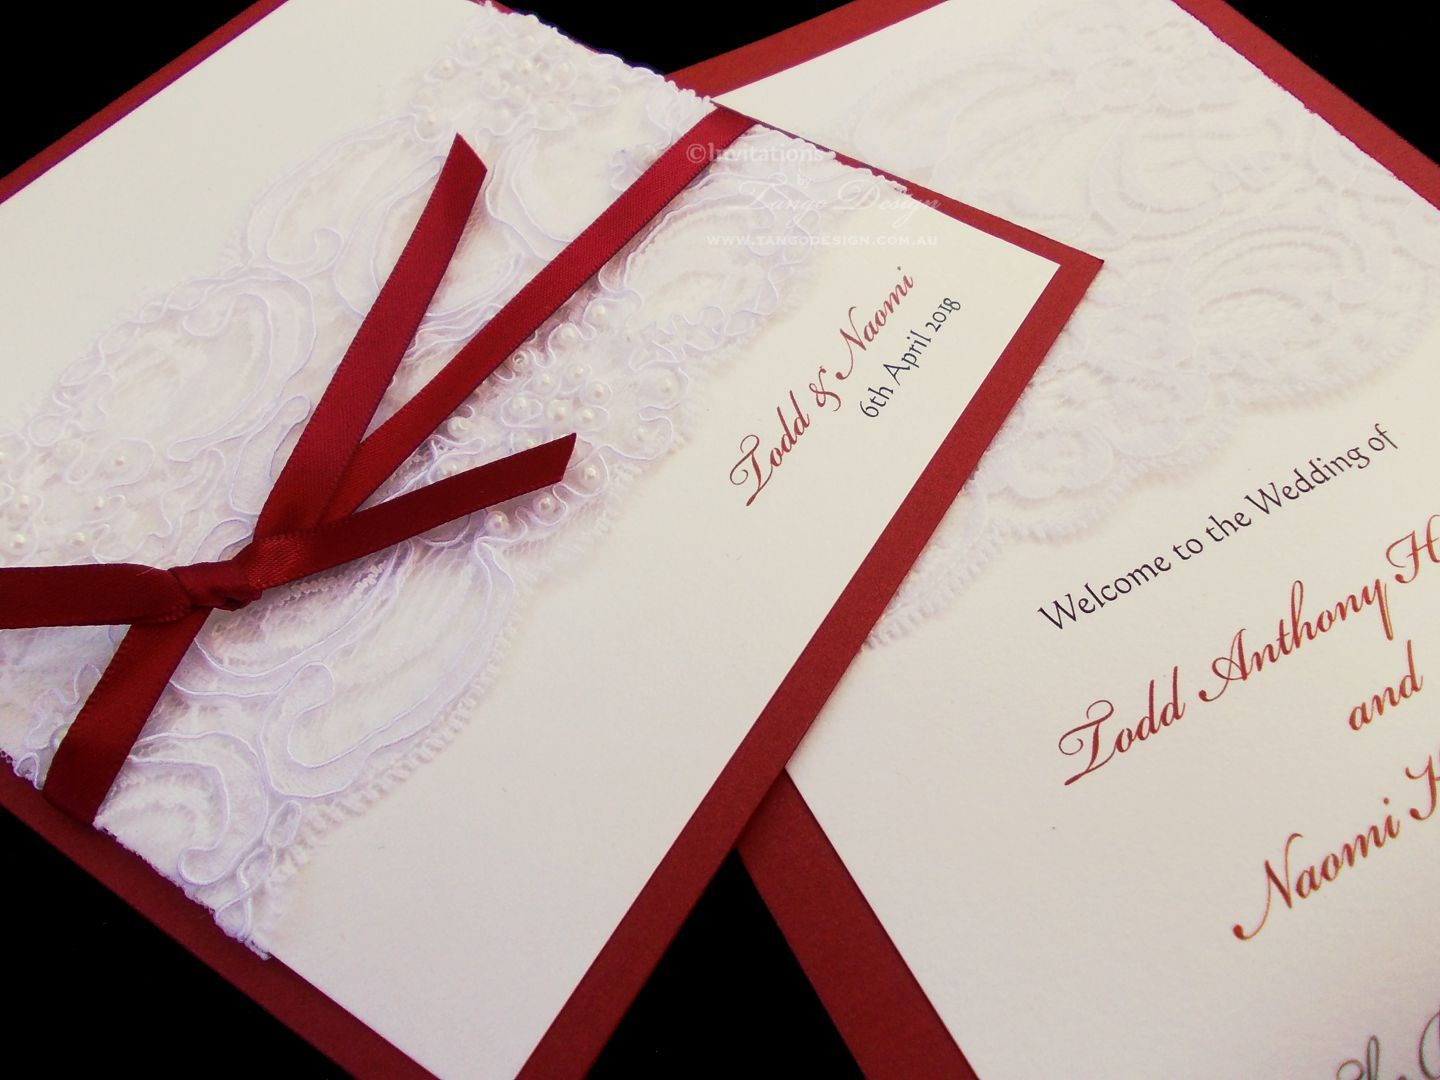 Burgandy or Marsala red wedding invitations with